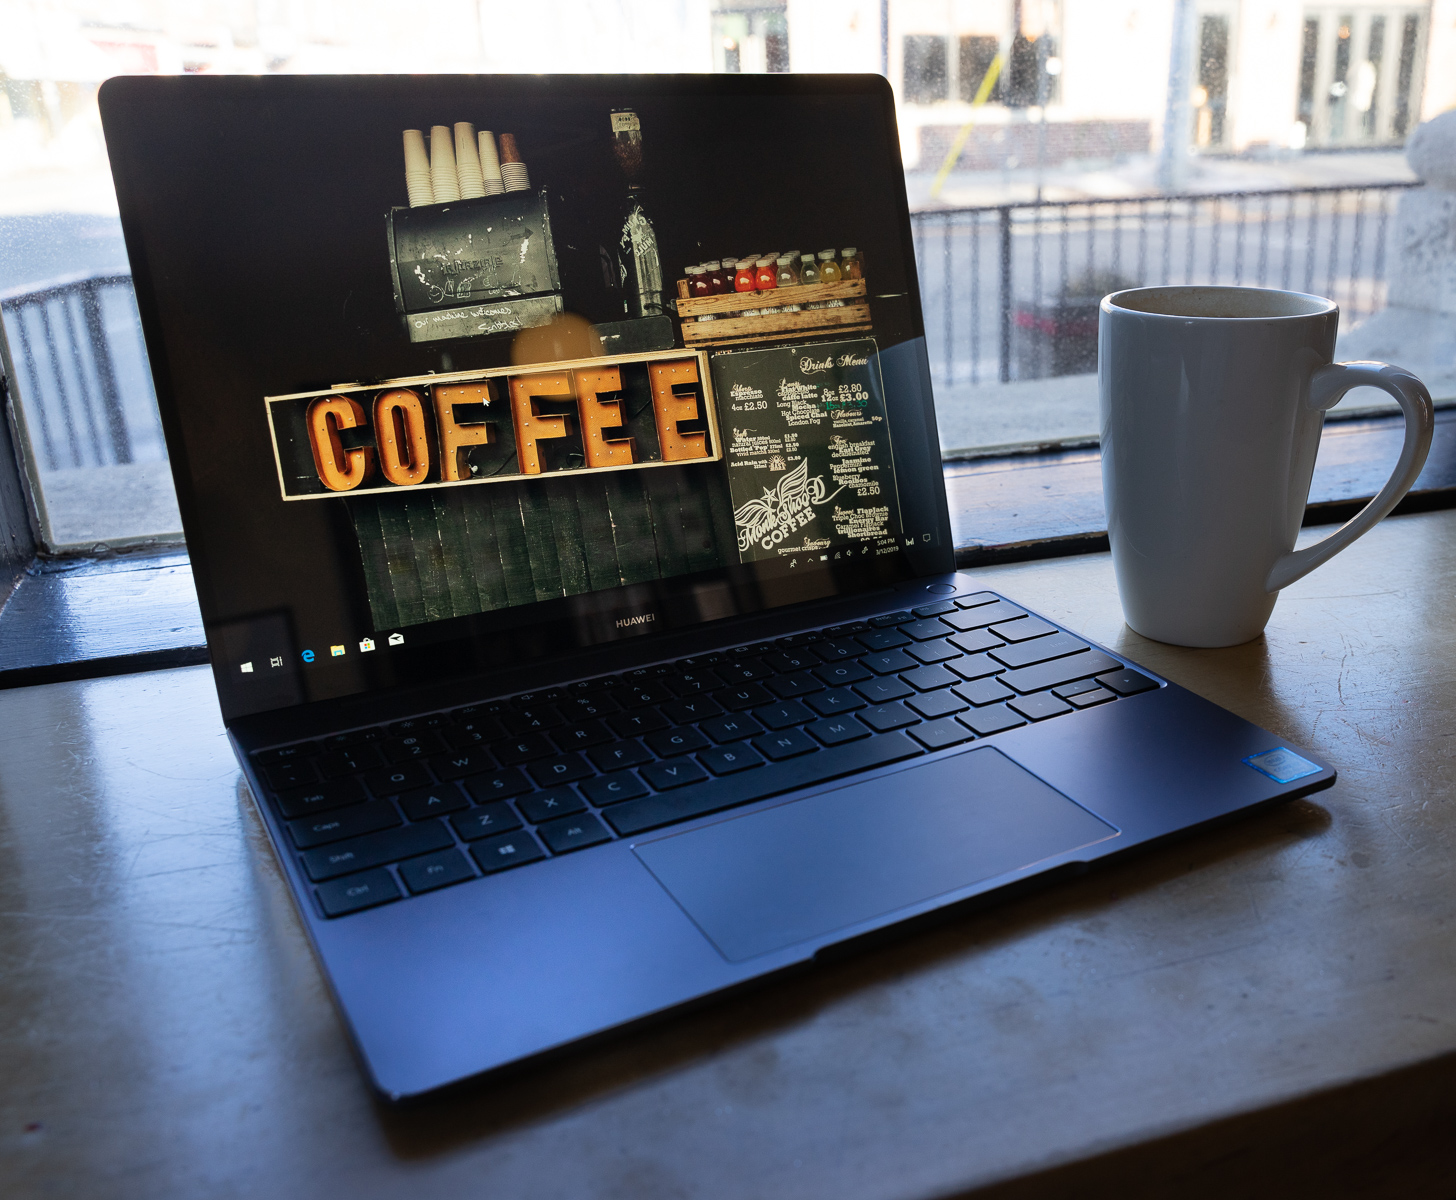 Huawei Matebook 13 coffee shop